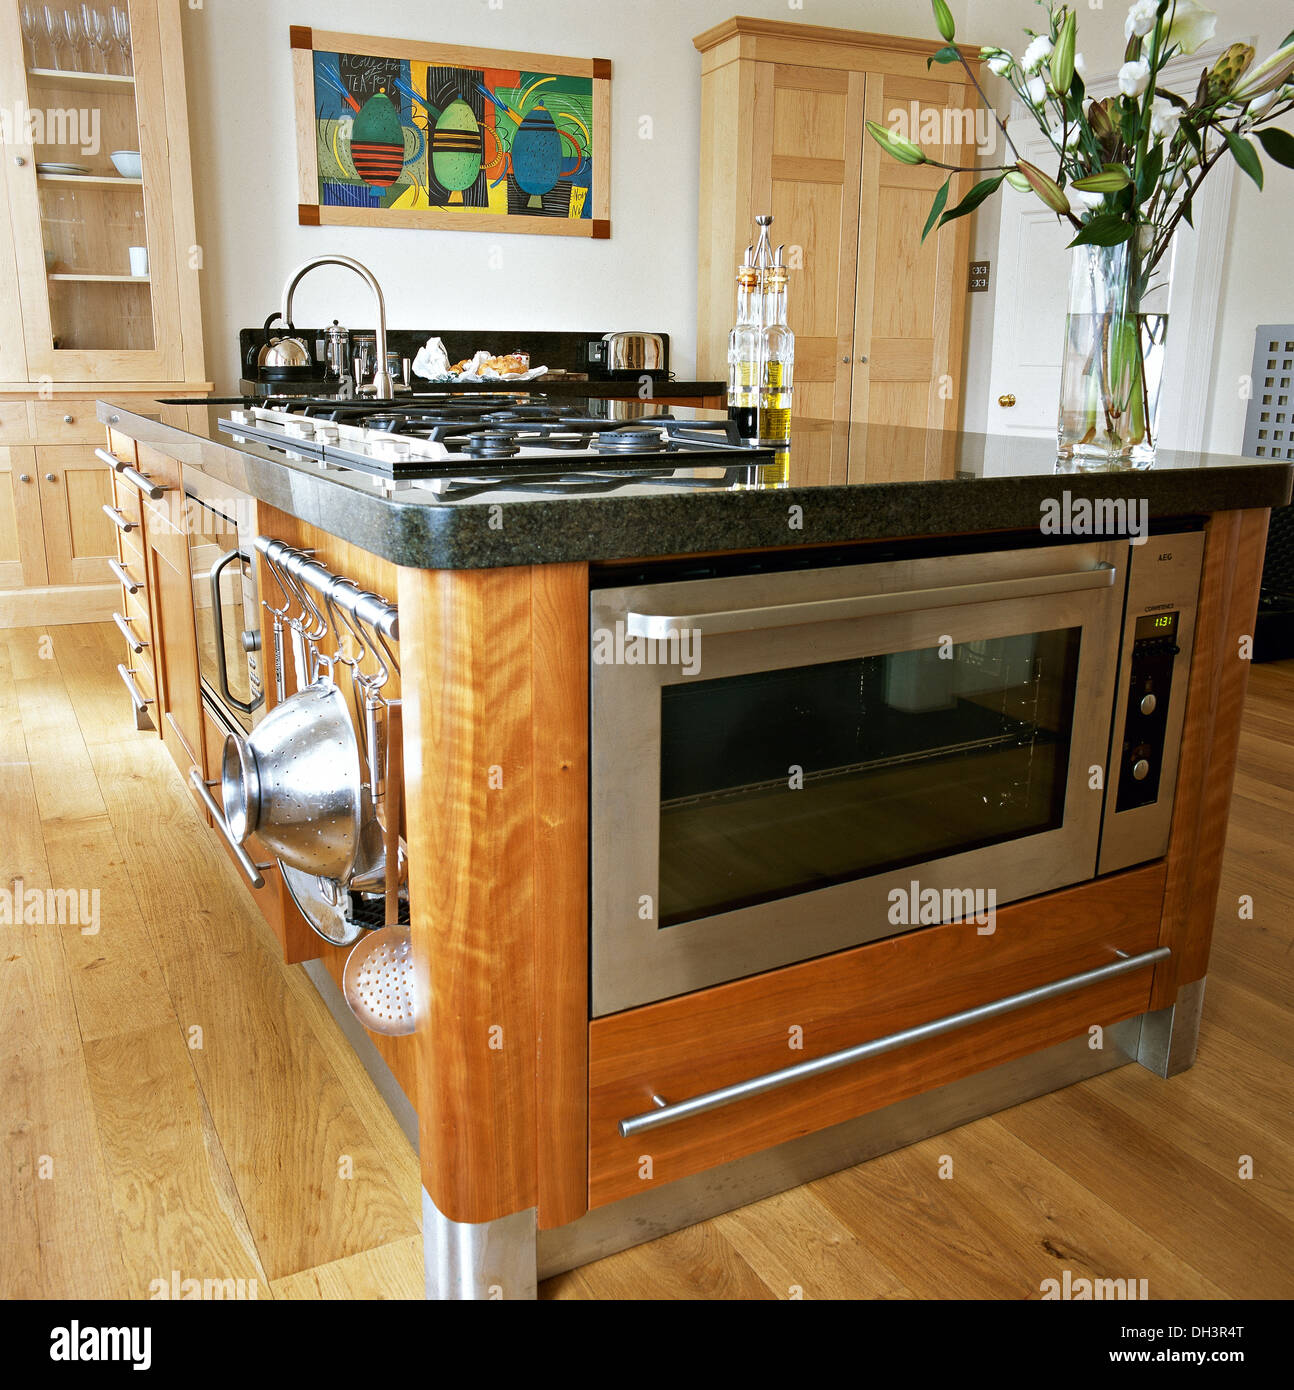 Kitchen Island Designs With Hob: Stainless Steel Oven And Integral Hob In Central Island